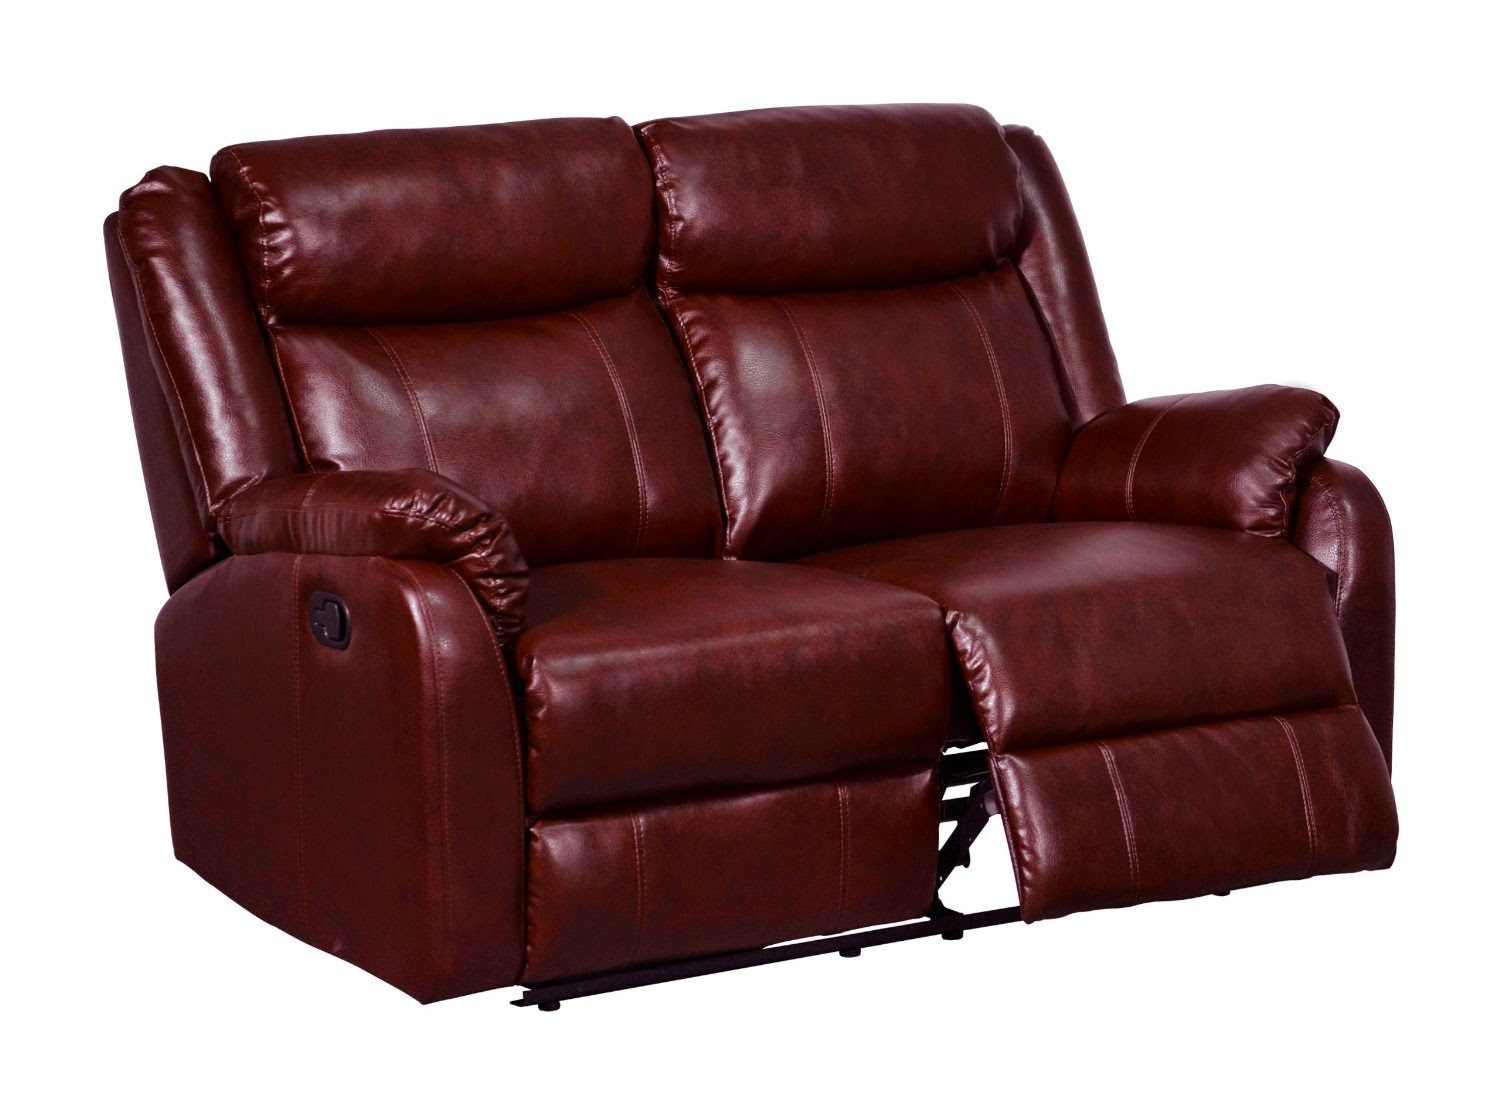 cheap reclining sofas sale 2 seater leather recliner sofa sale. Black Bedroom Furniture Sets. Home Design Ideas